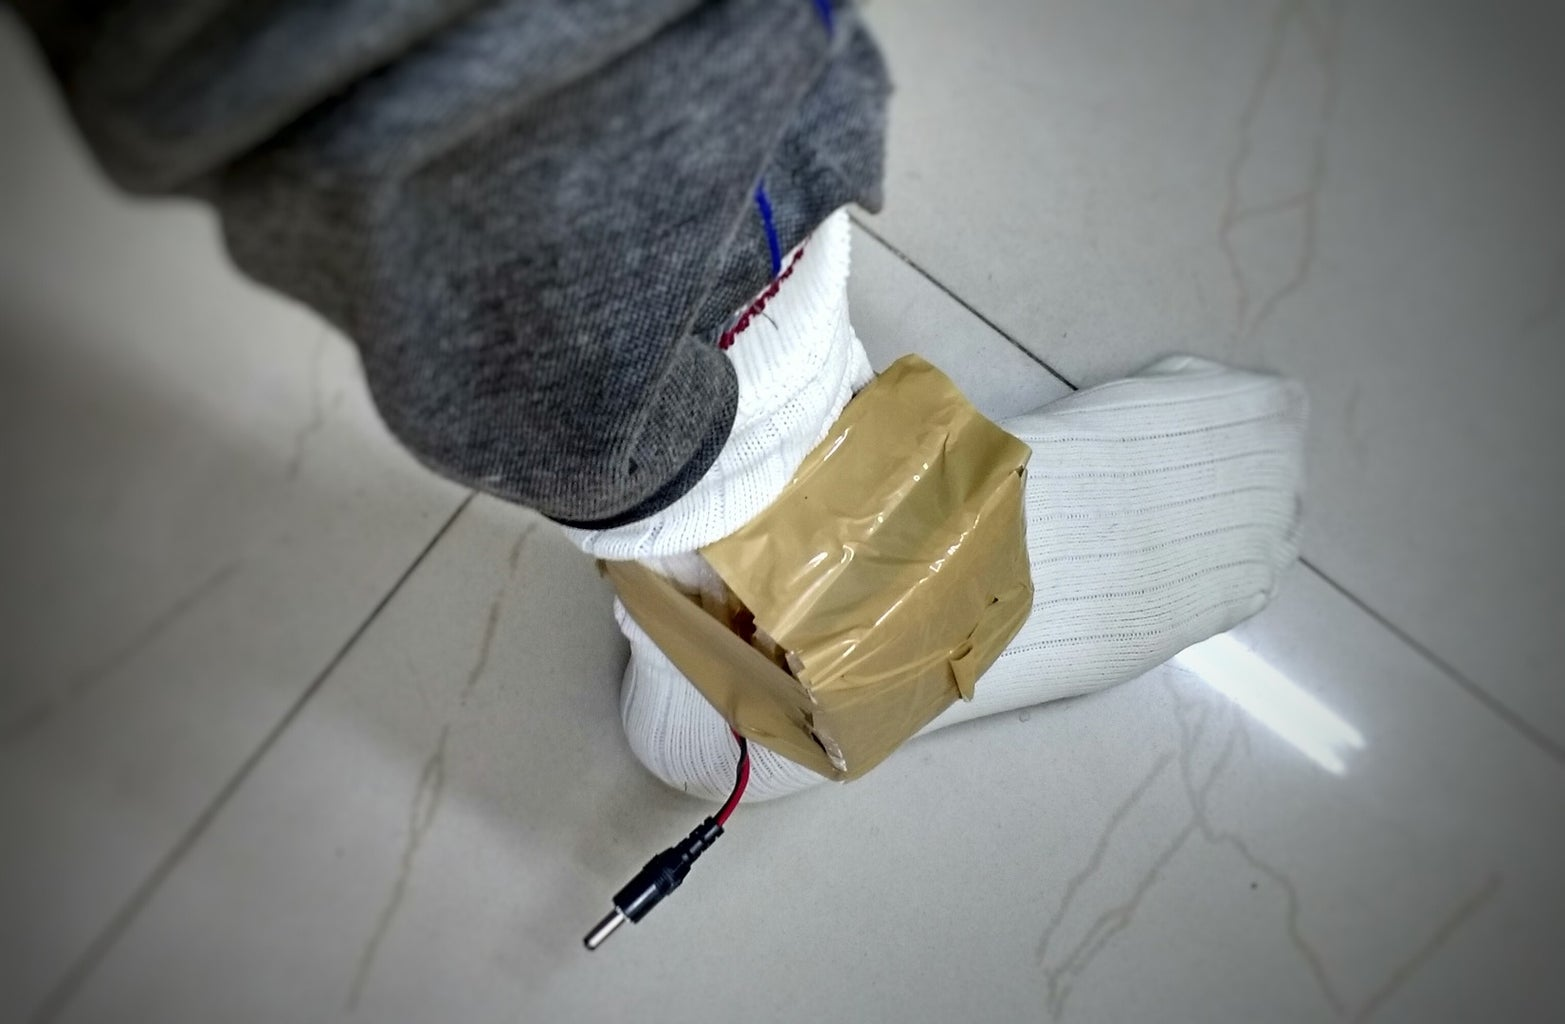 Collecting Accelerometer Data (step 1): Wearing the Accumulator